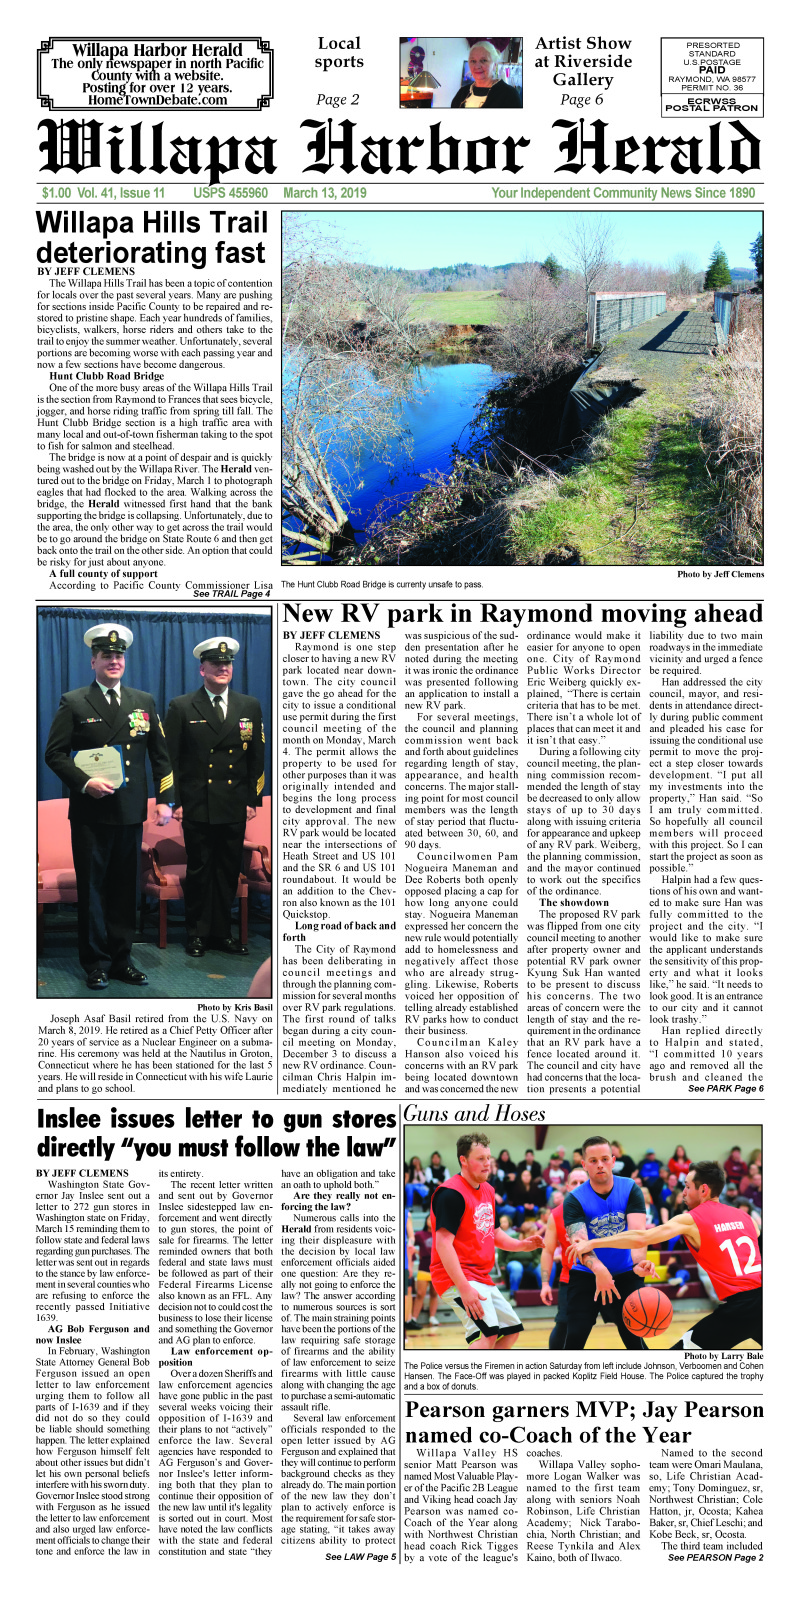 March 13, 2019 Willapa Harbor Herald